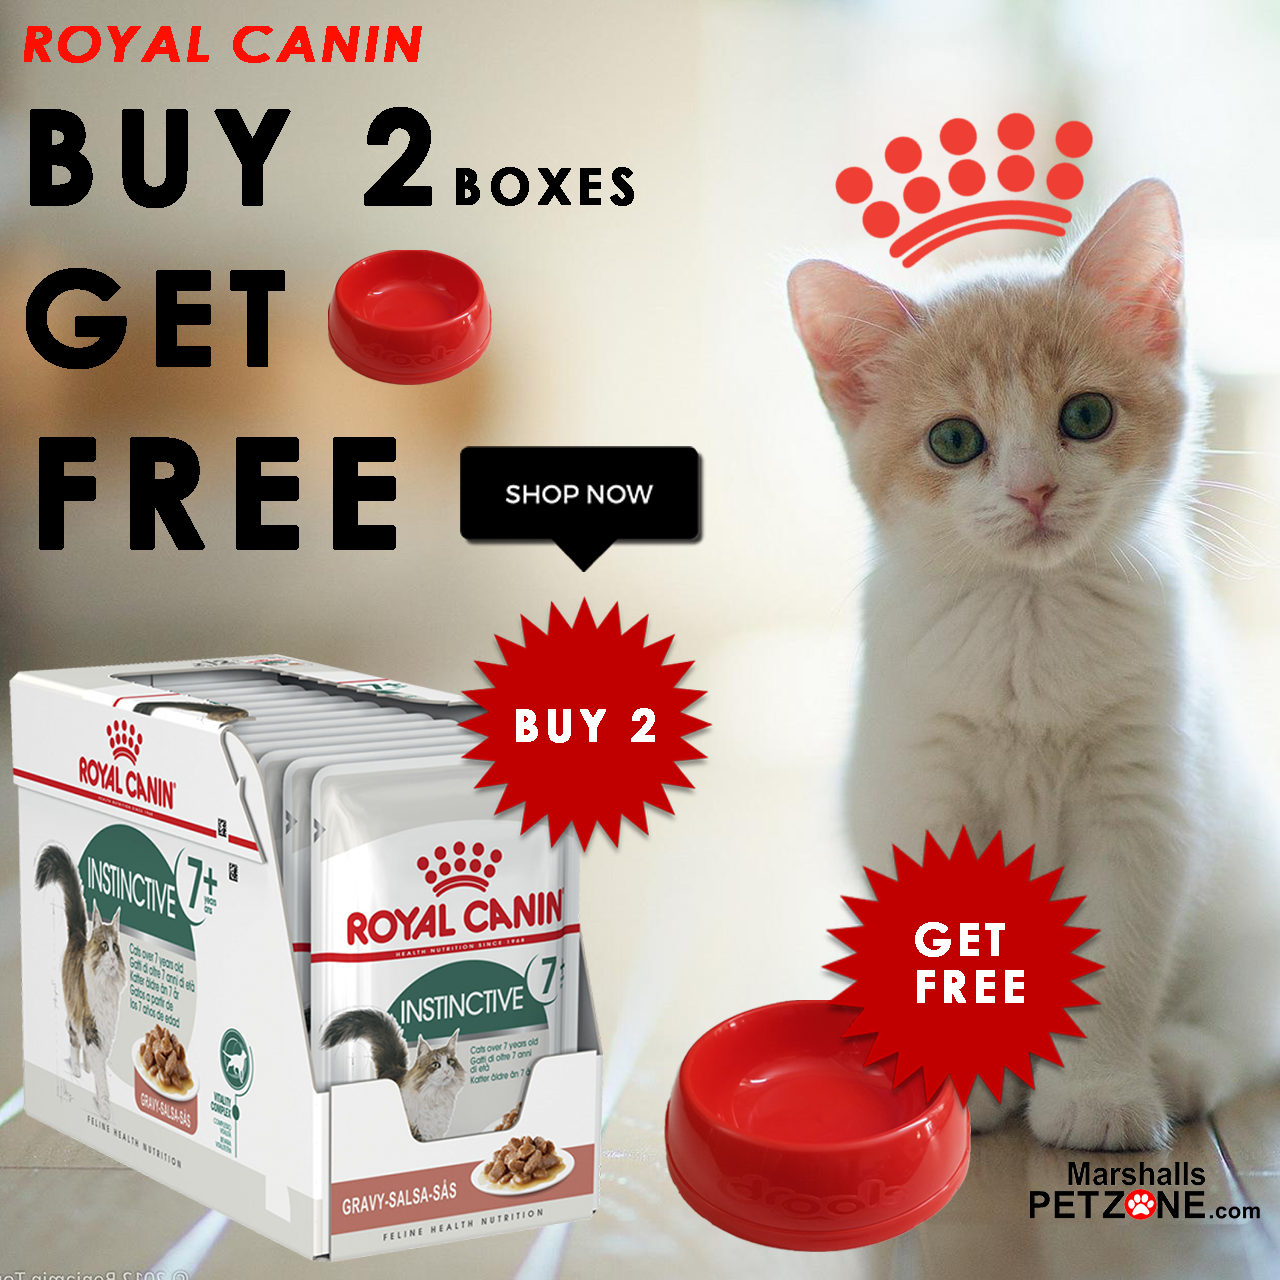 Get A Bowl Free On Royal Canin Wet Cat Food In 2020 Buy A Cat Wet Cat Food Cat Food